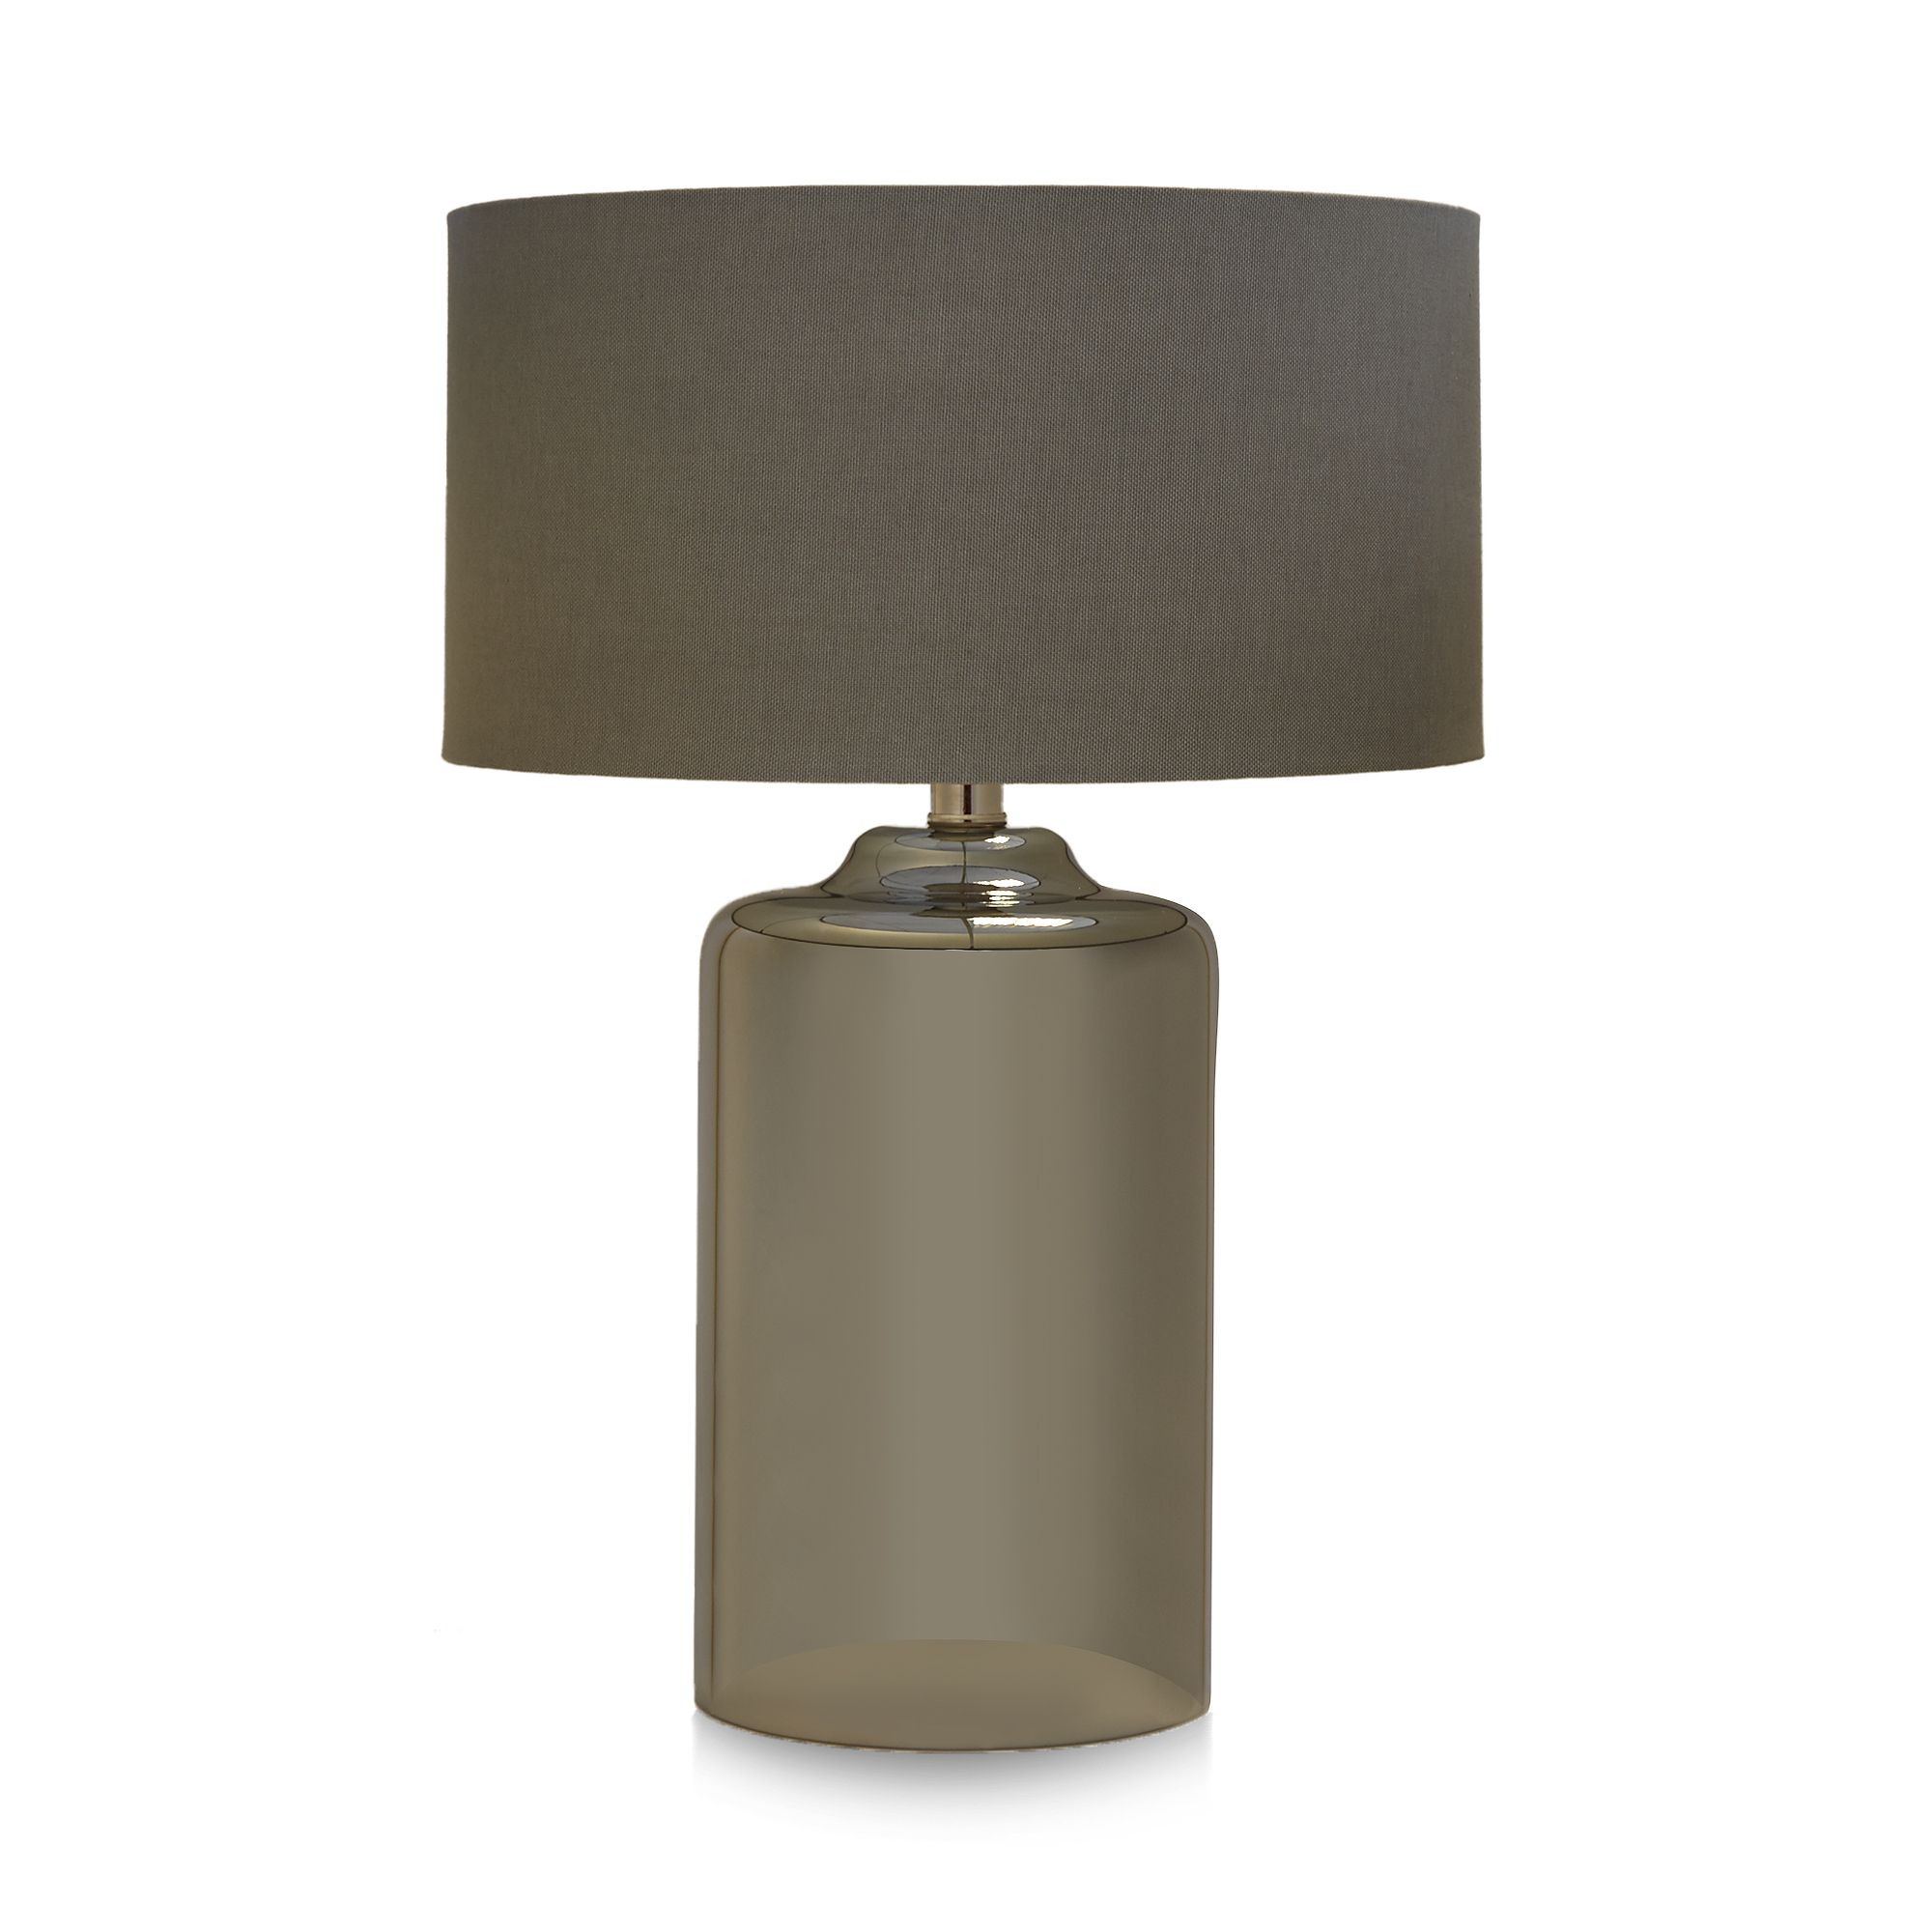 Home Collection Grey Glass Table Lamp From Debenhams